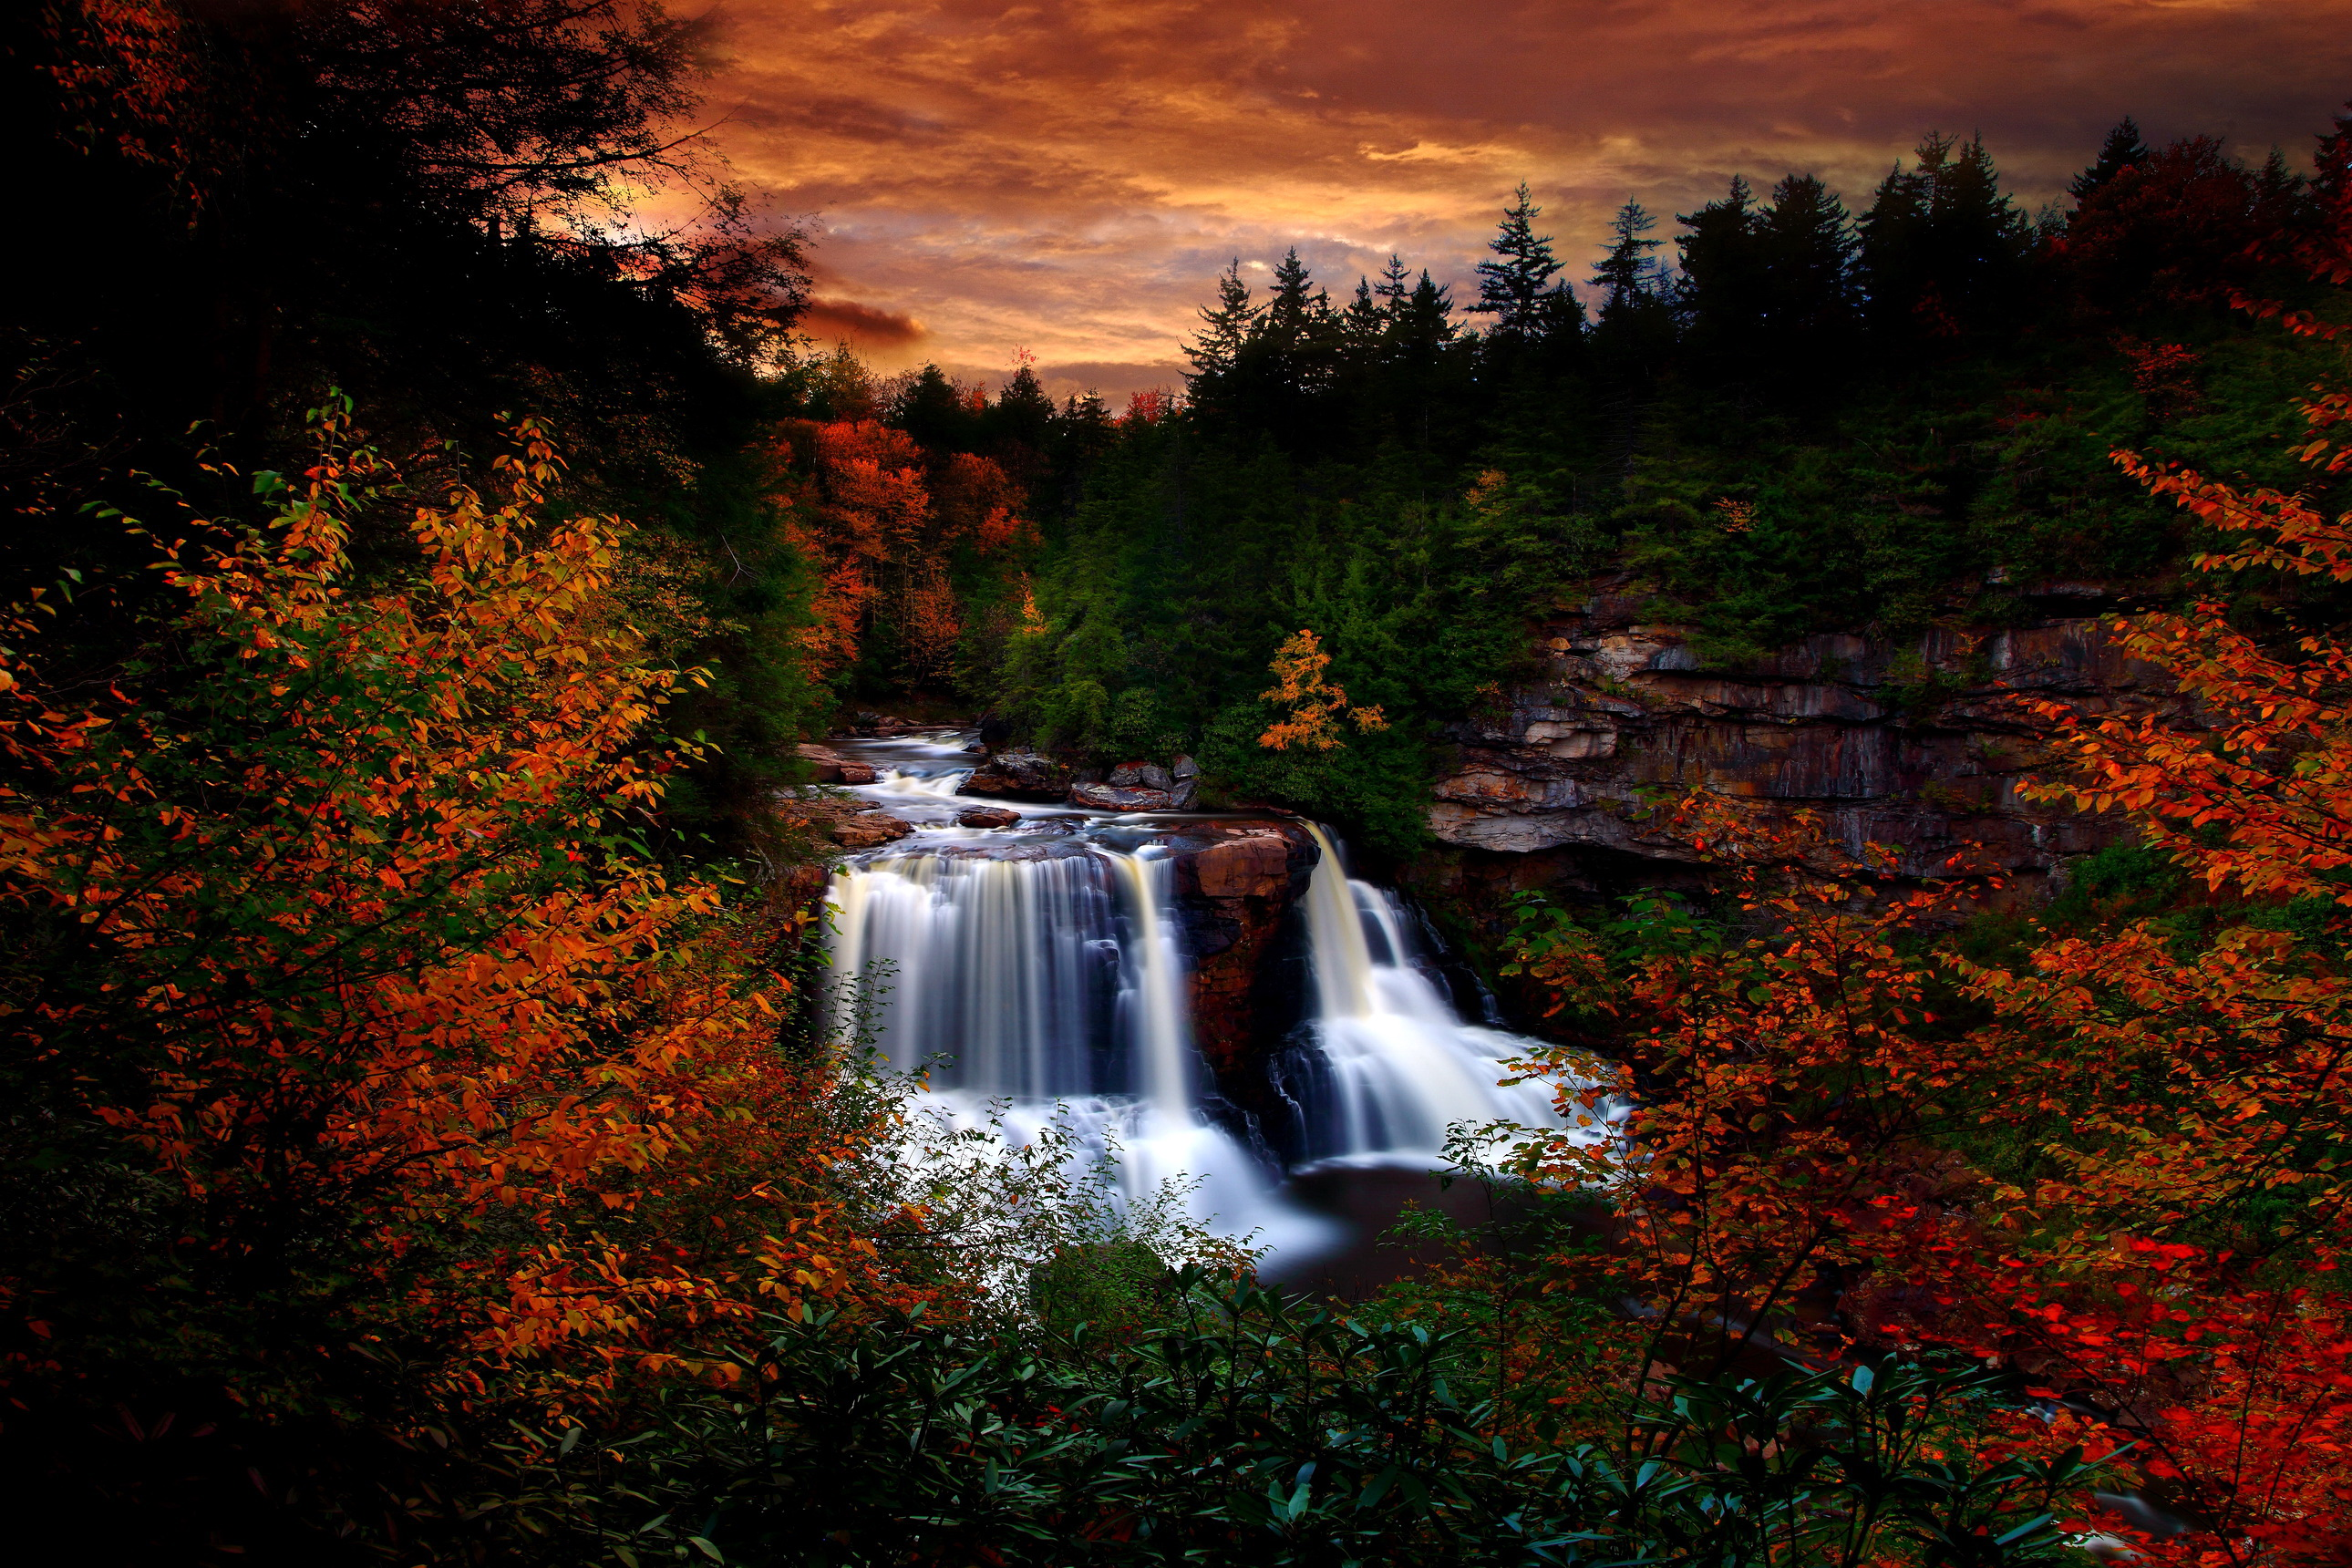 www autumn wallpaper picturesque creek | www.picturesboss